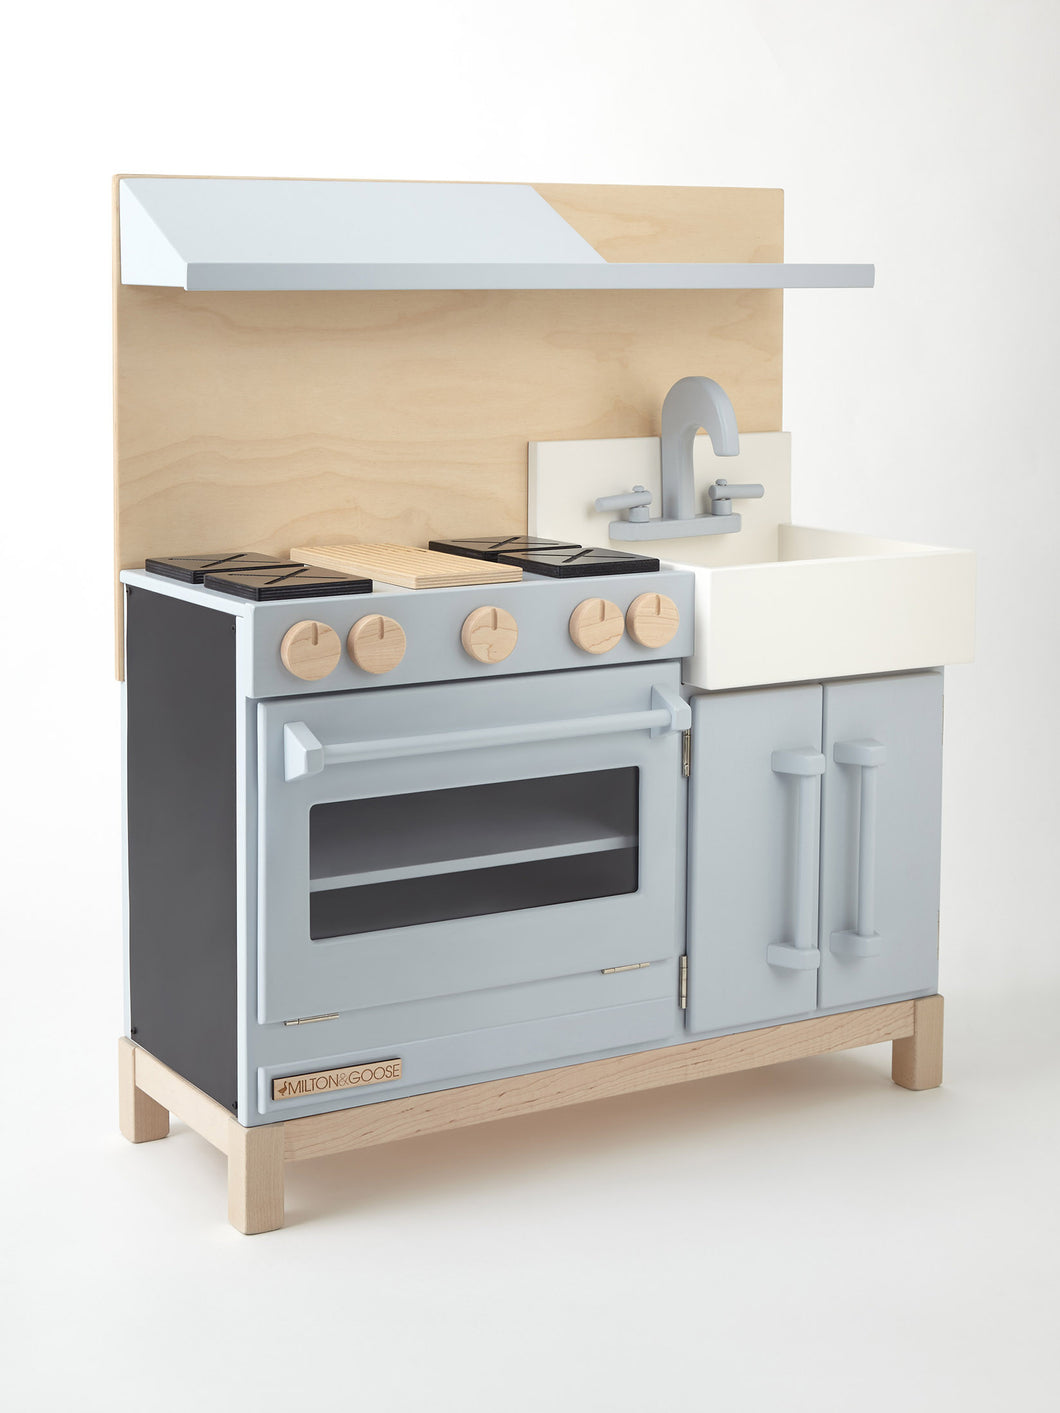 classic play kitchen - Play Kitchen